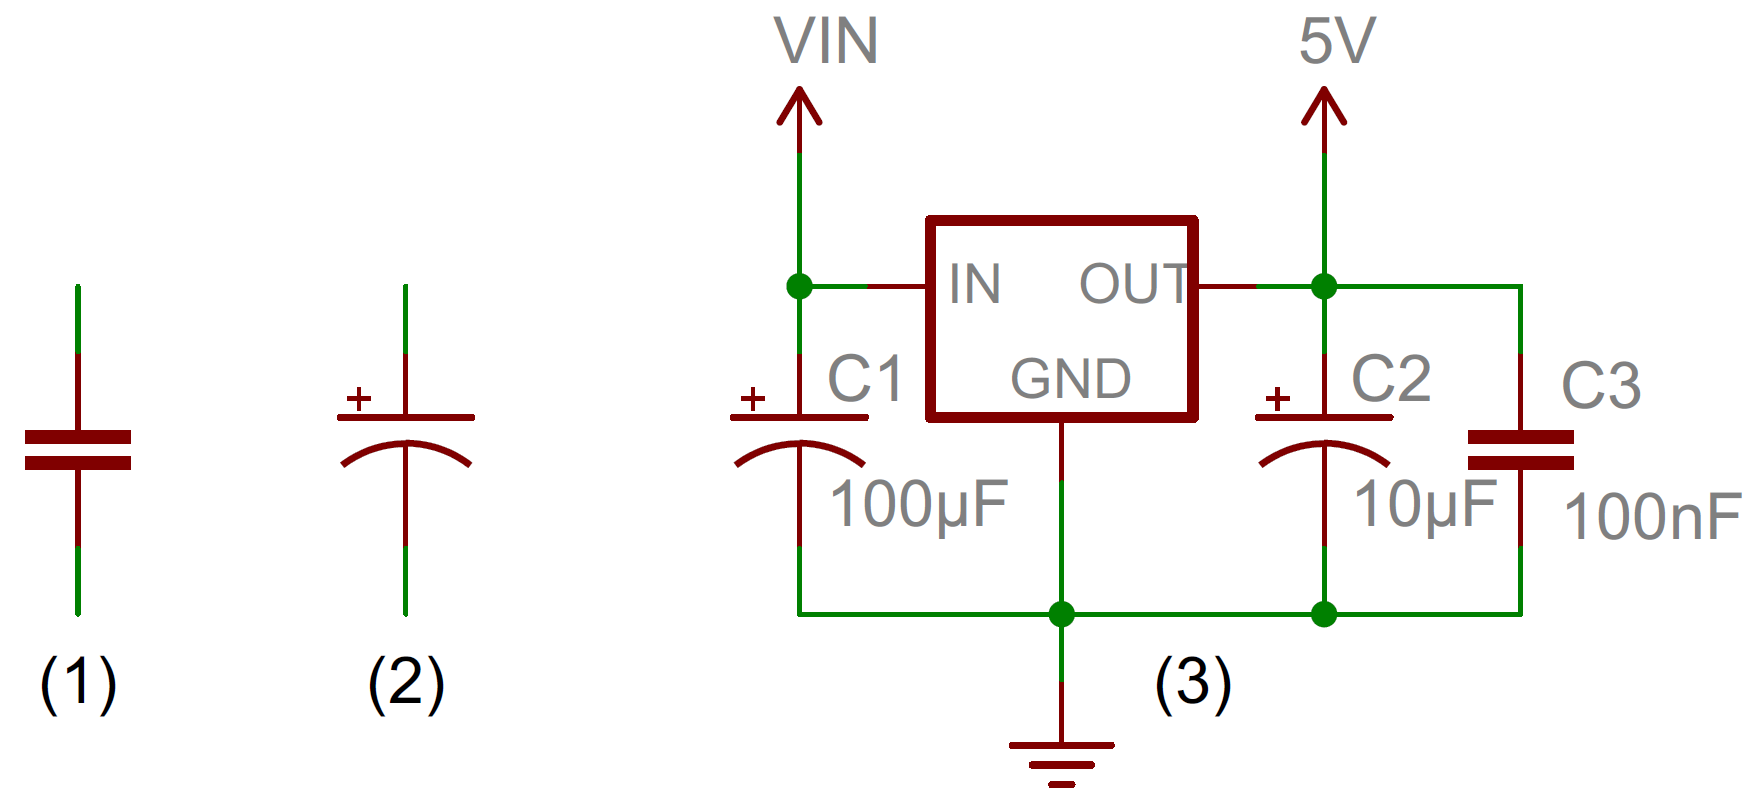 Capacitors Thorough And Provides A Great Introduction To Electric Circuits Capacitor Circuit Symbols